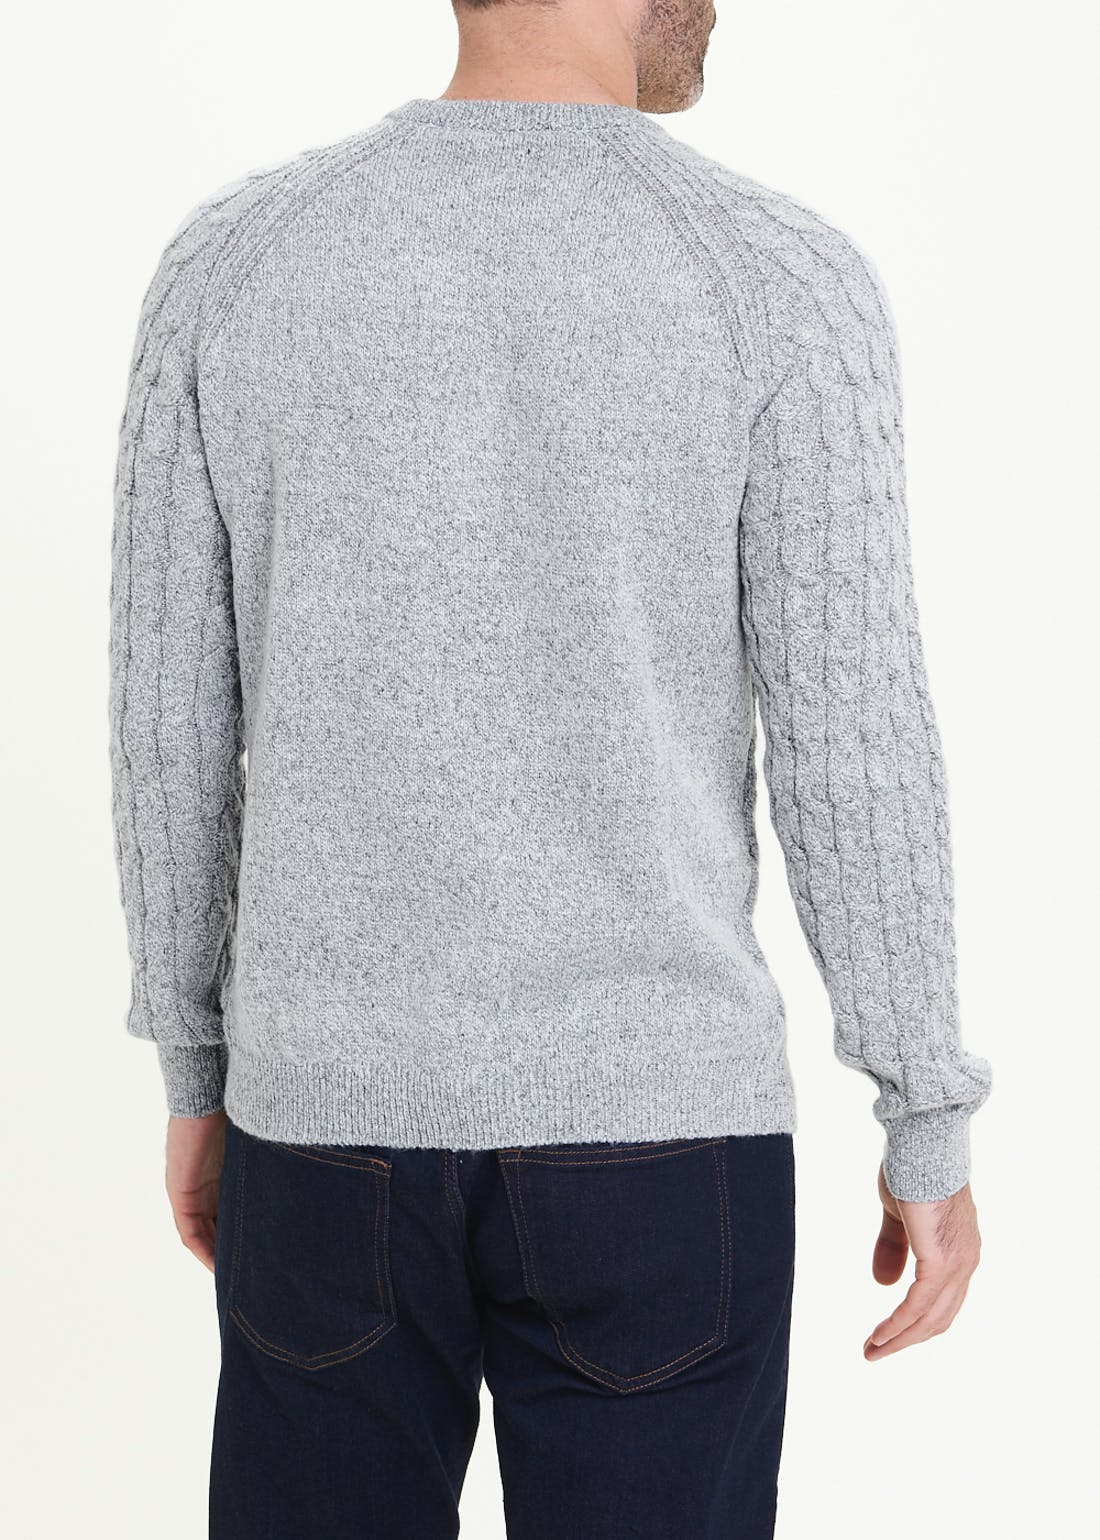 Lincoln Soft Touch Cable Knit Jumper